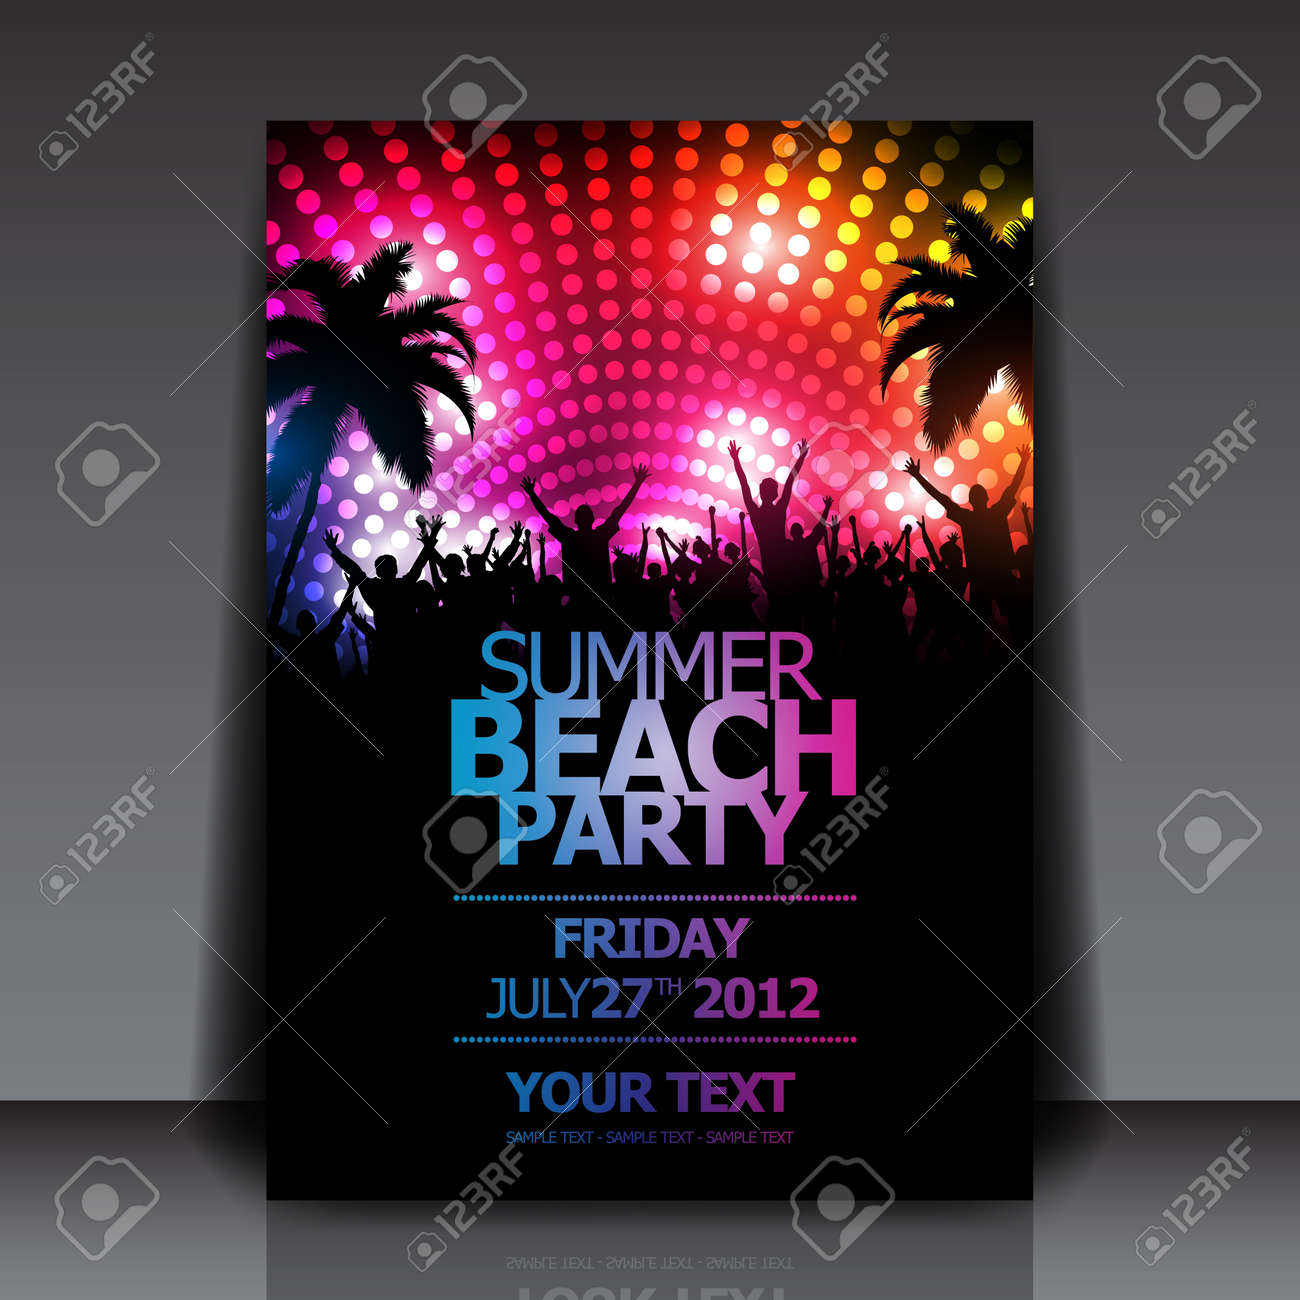 summer beach party flyer template royalty cliparts vectors summer beach party flyer template stock vector 14428923